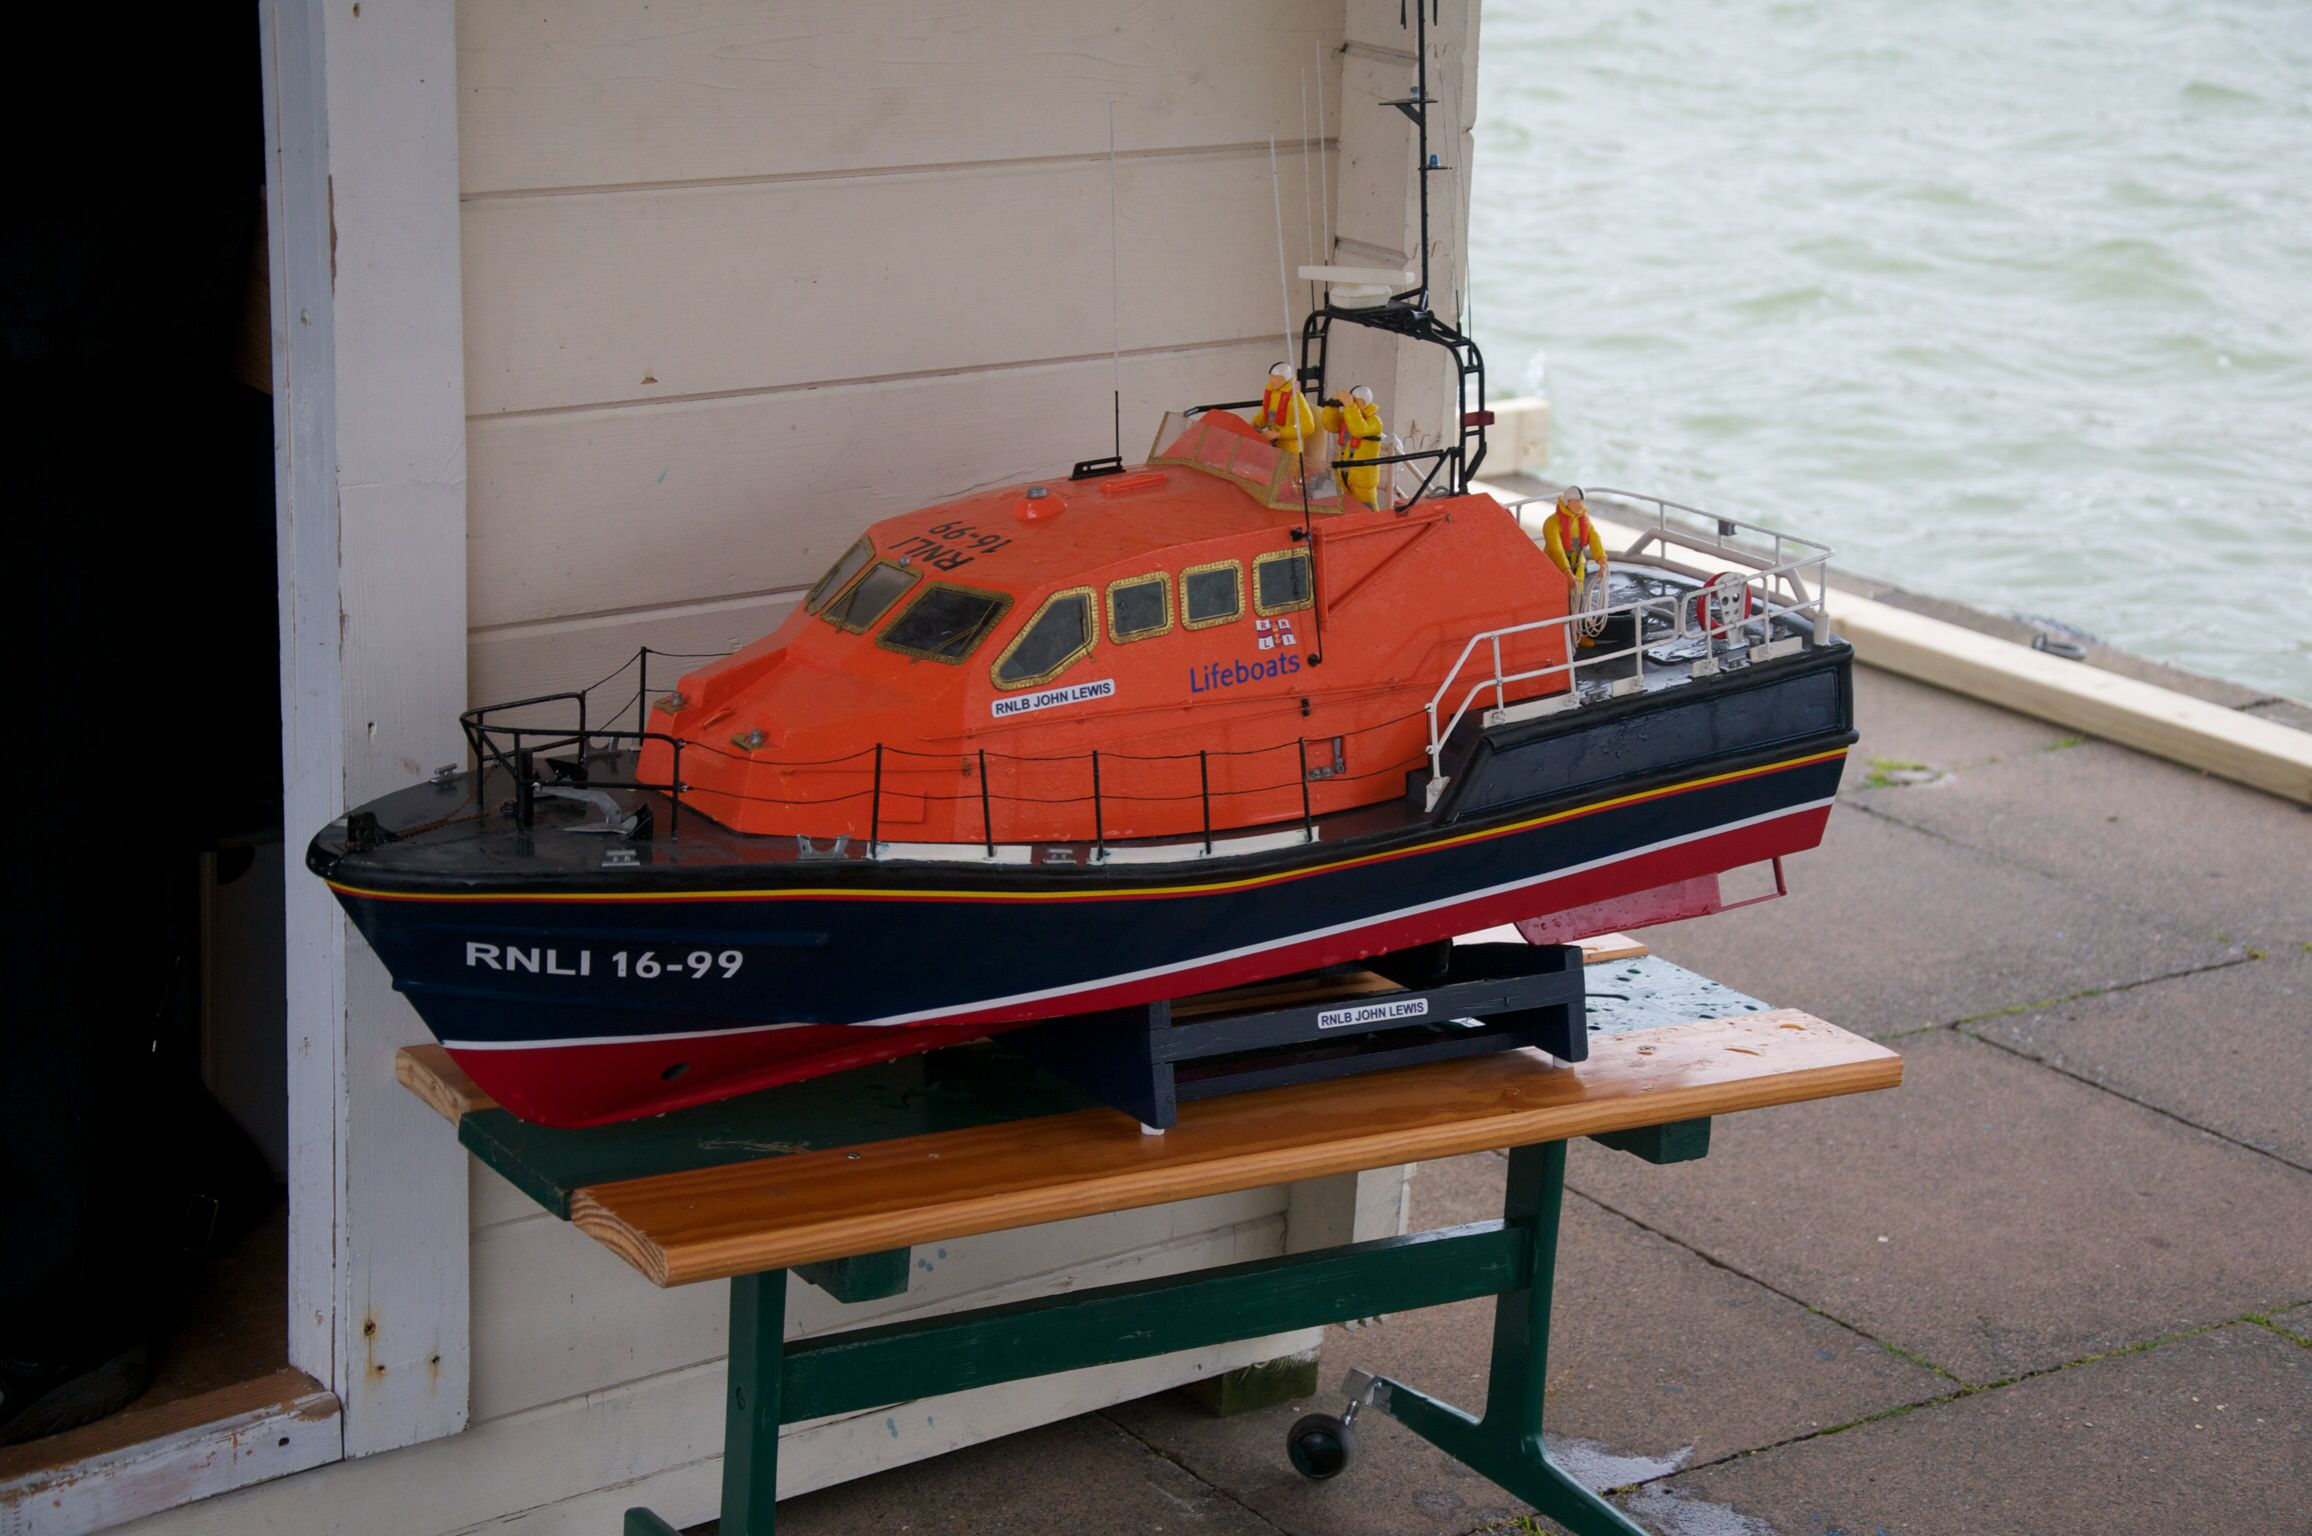 Scratch built RNLI Lifeboat, built by one of the members ...